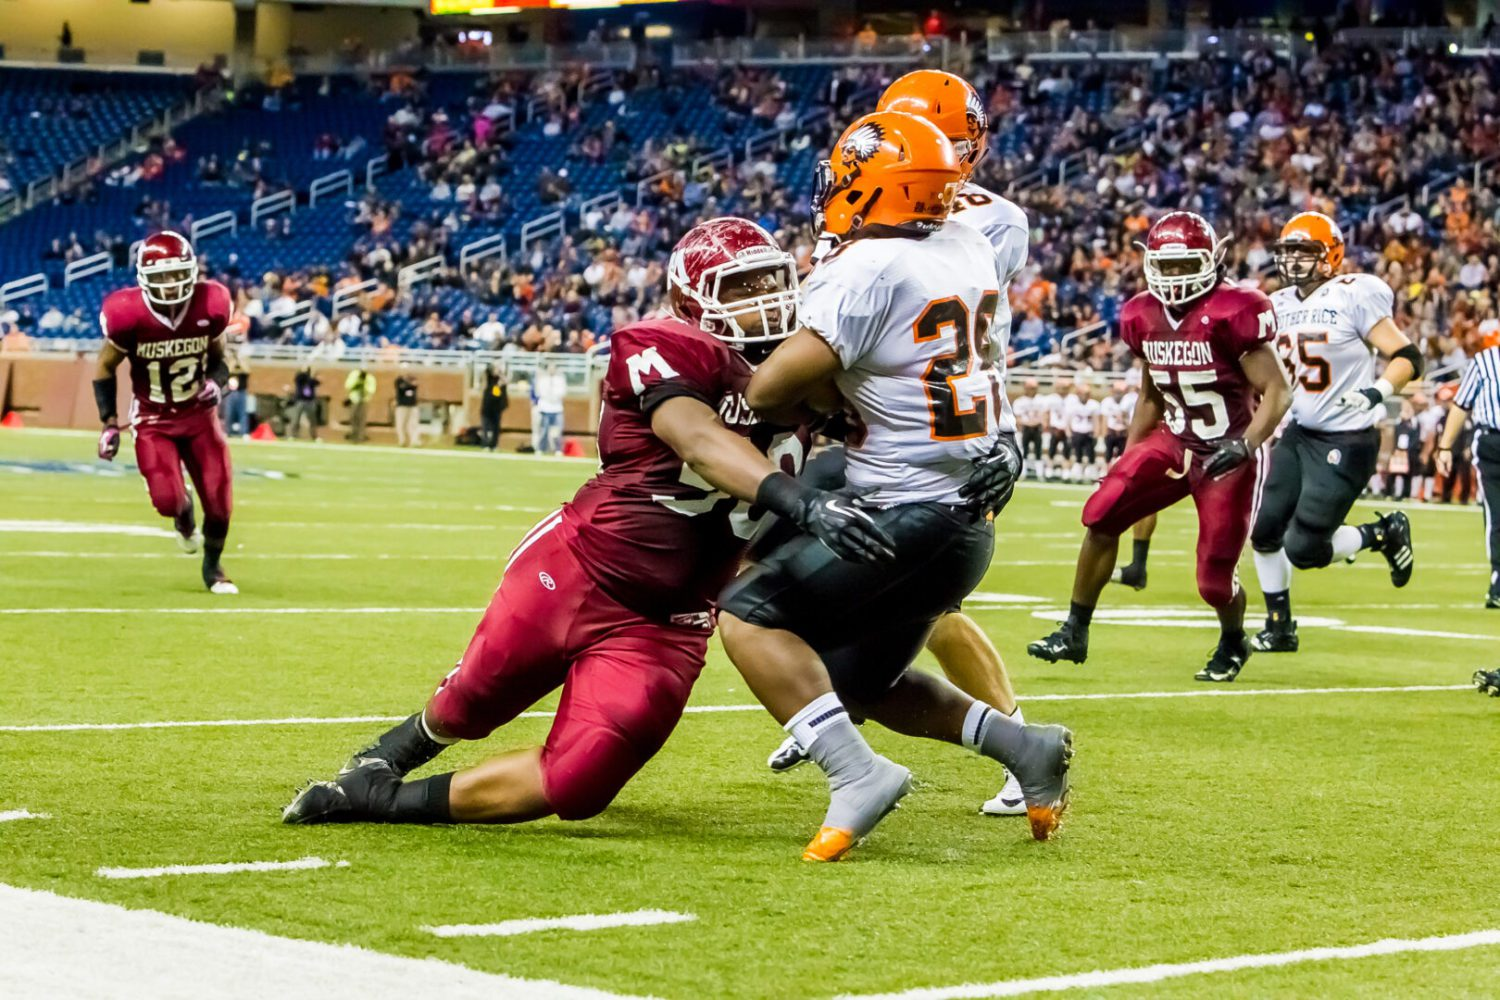 Muskegon Big Reds fall victim to late trick plays in Division 2 state title setback to Birmingham Brother Rice